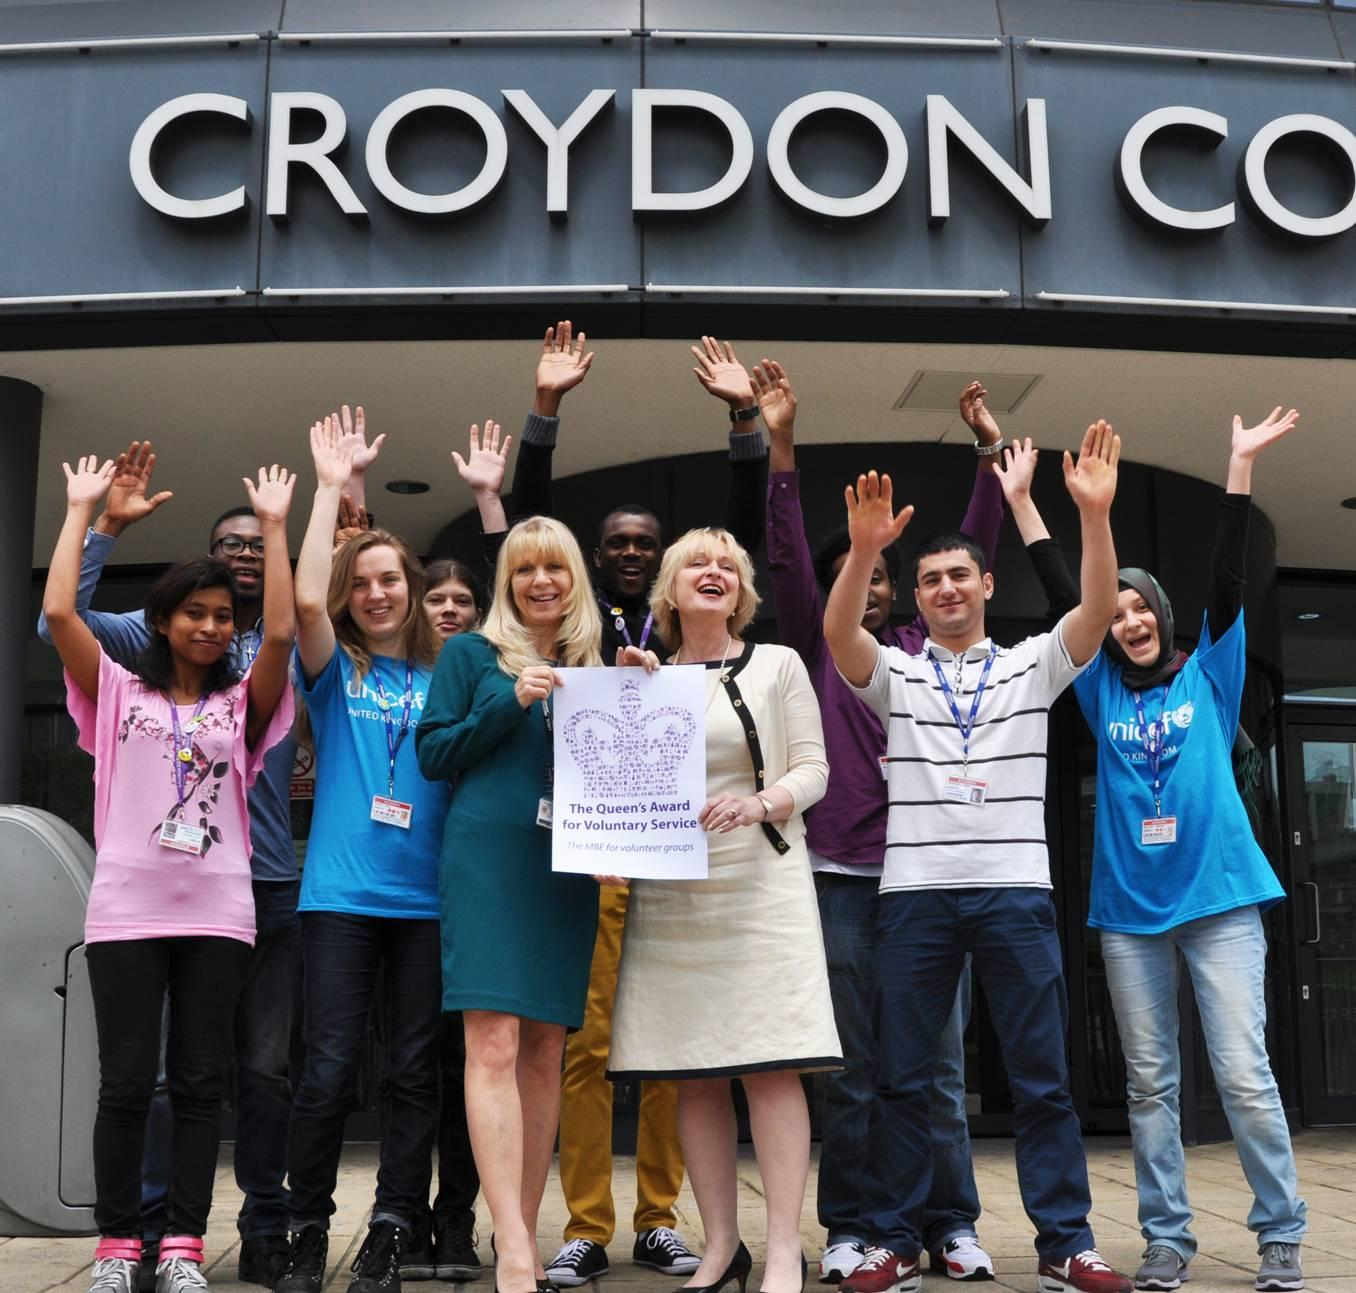 Croydon College staff and students celebrate the award